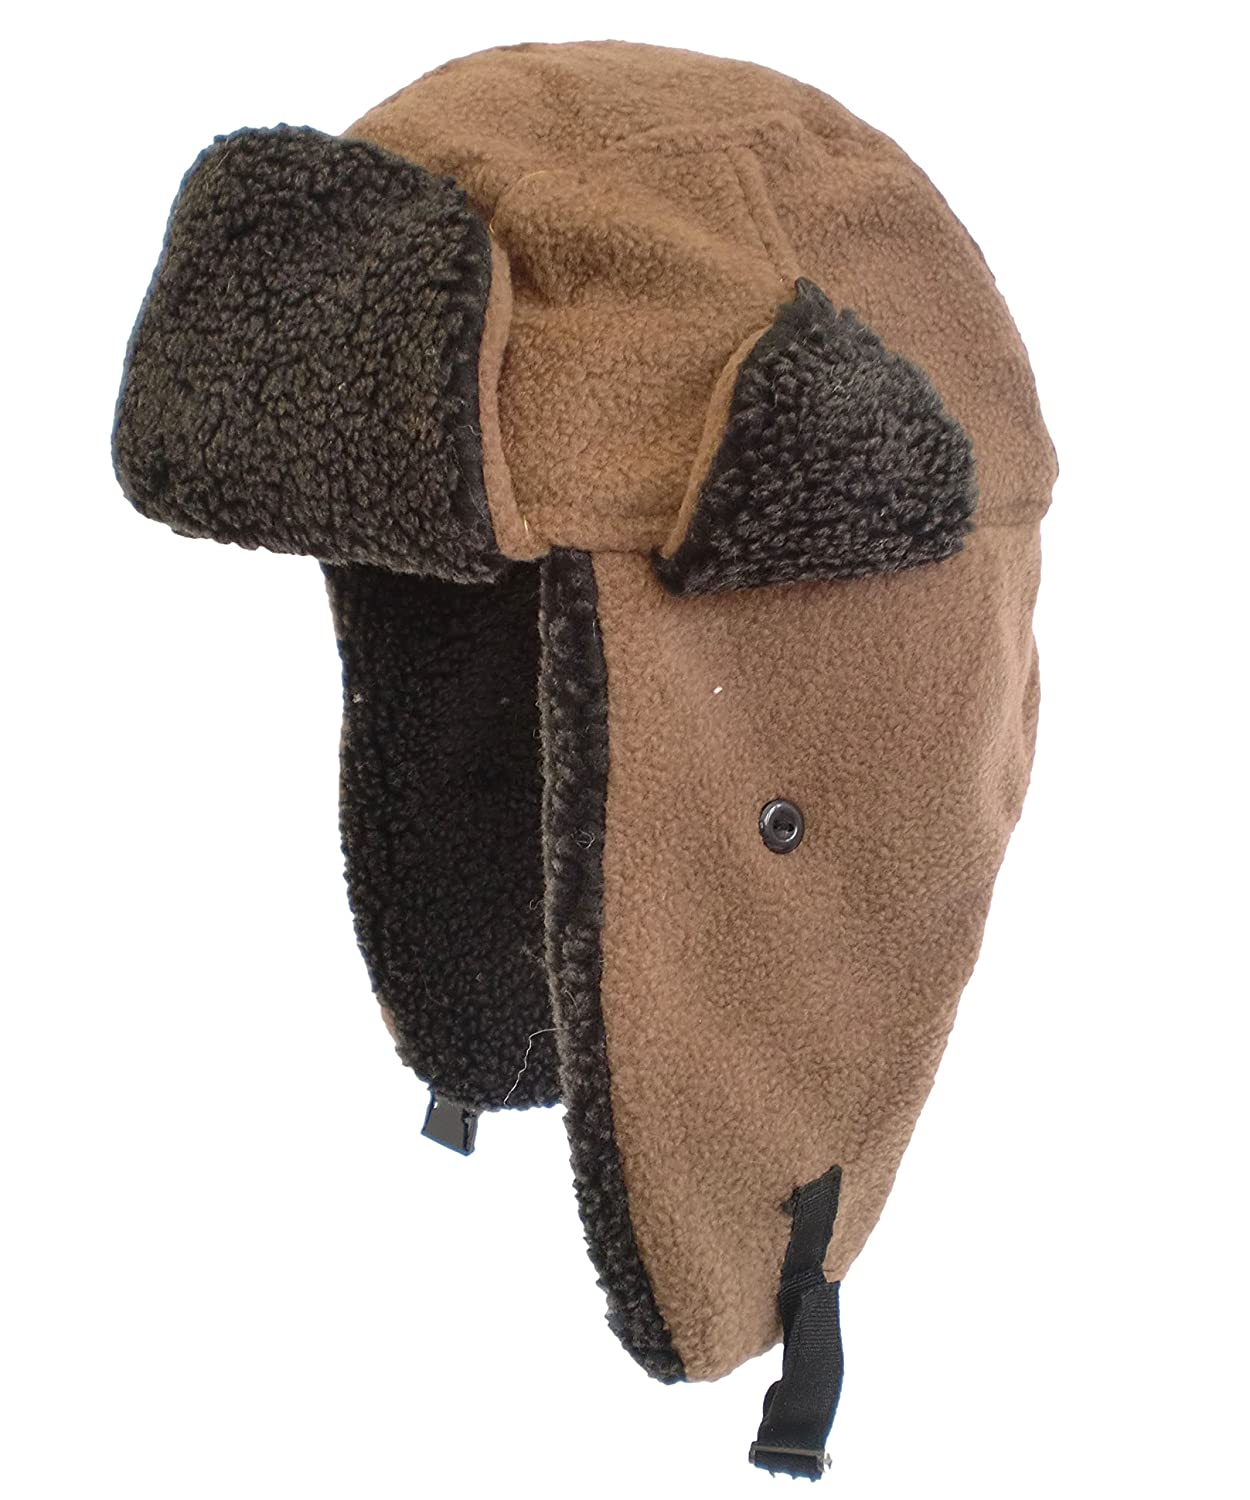 Adult Fleece Trapper Hat Warm Thermal Winter Ski Hat